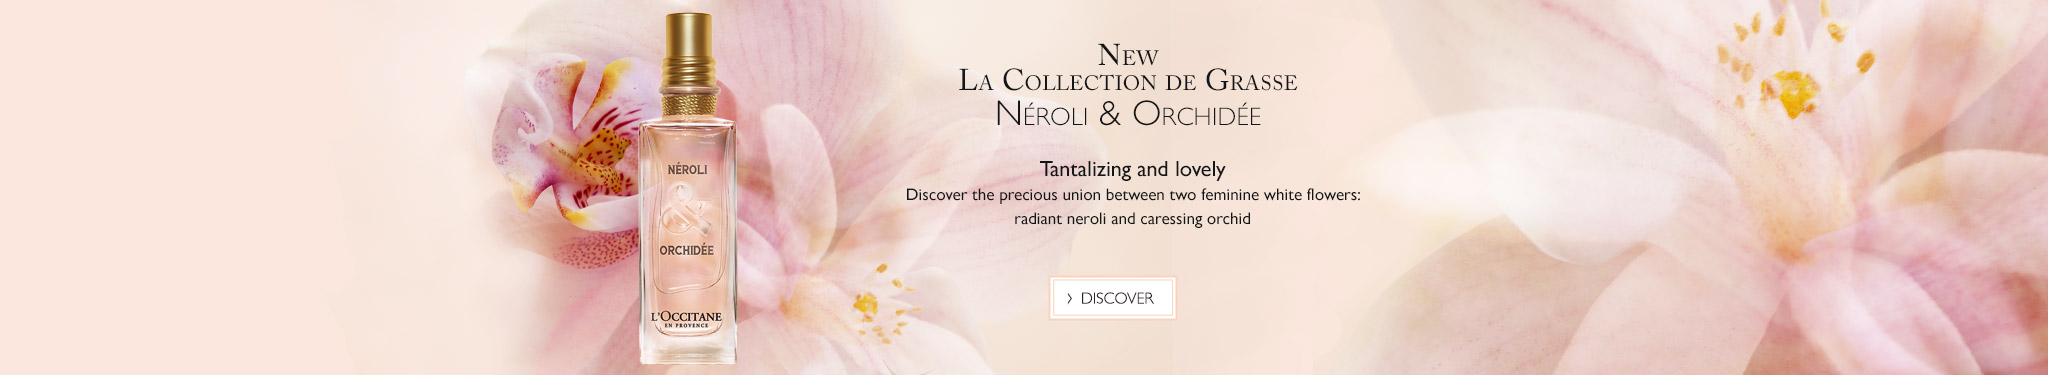 La Collection Grasse Neroli et Orchidee Eau de Parfum